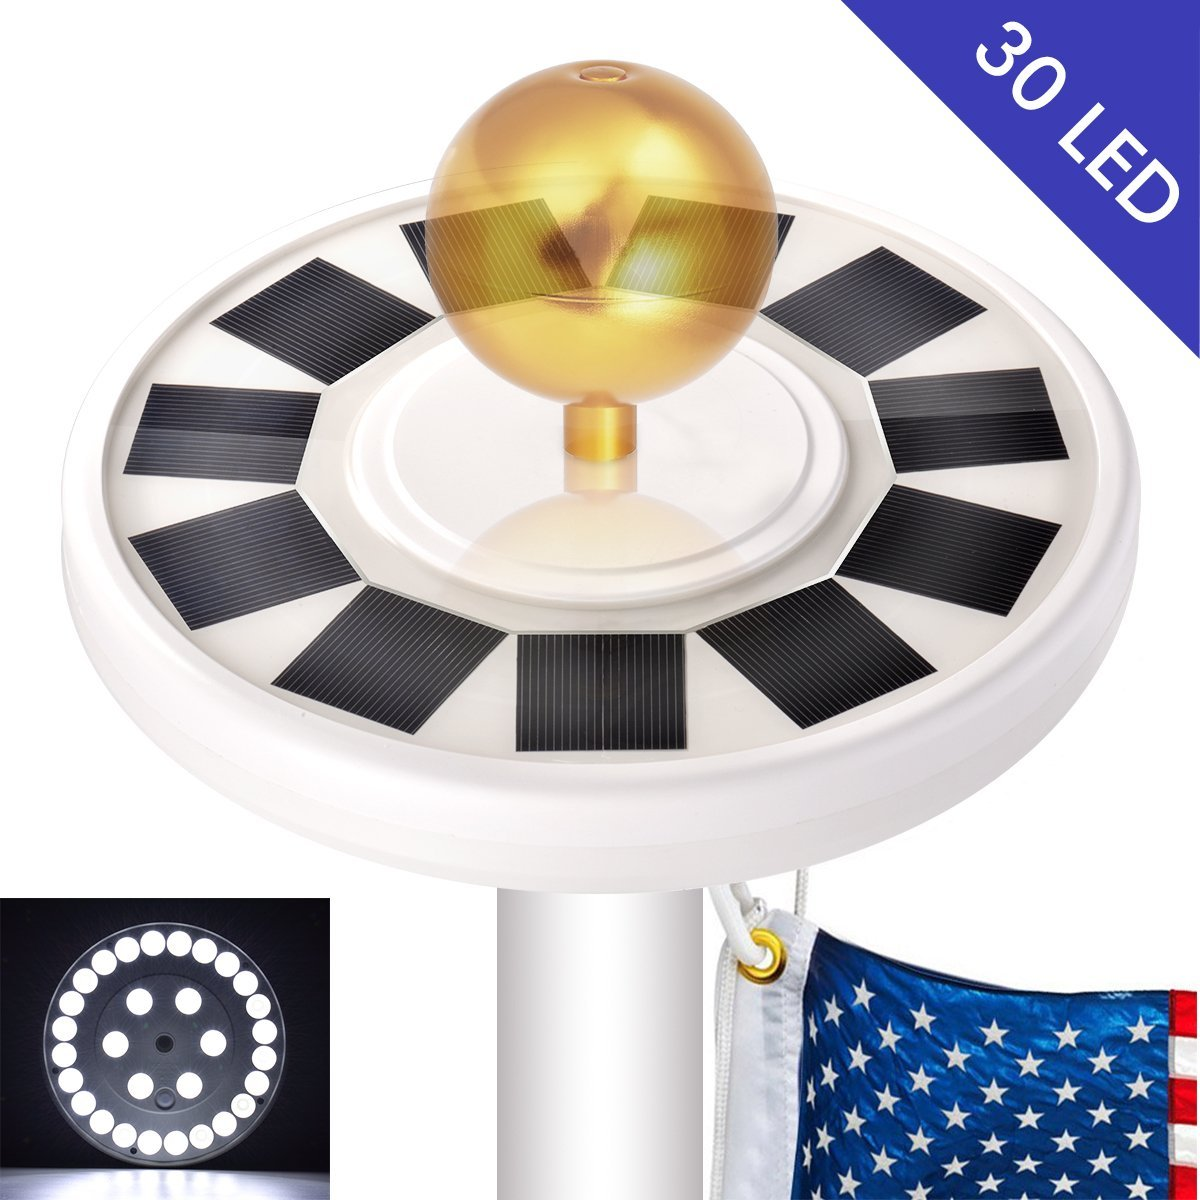 Olssda Flag Pole Lights Solar Powered 26 LED Waterproof Flagpole Downlight for Most 15 to 25 Ft Dusk to Dawn Auto On//Off Night Lighting